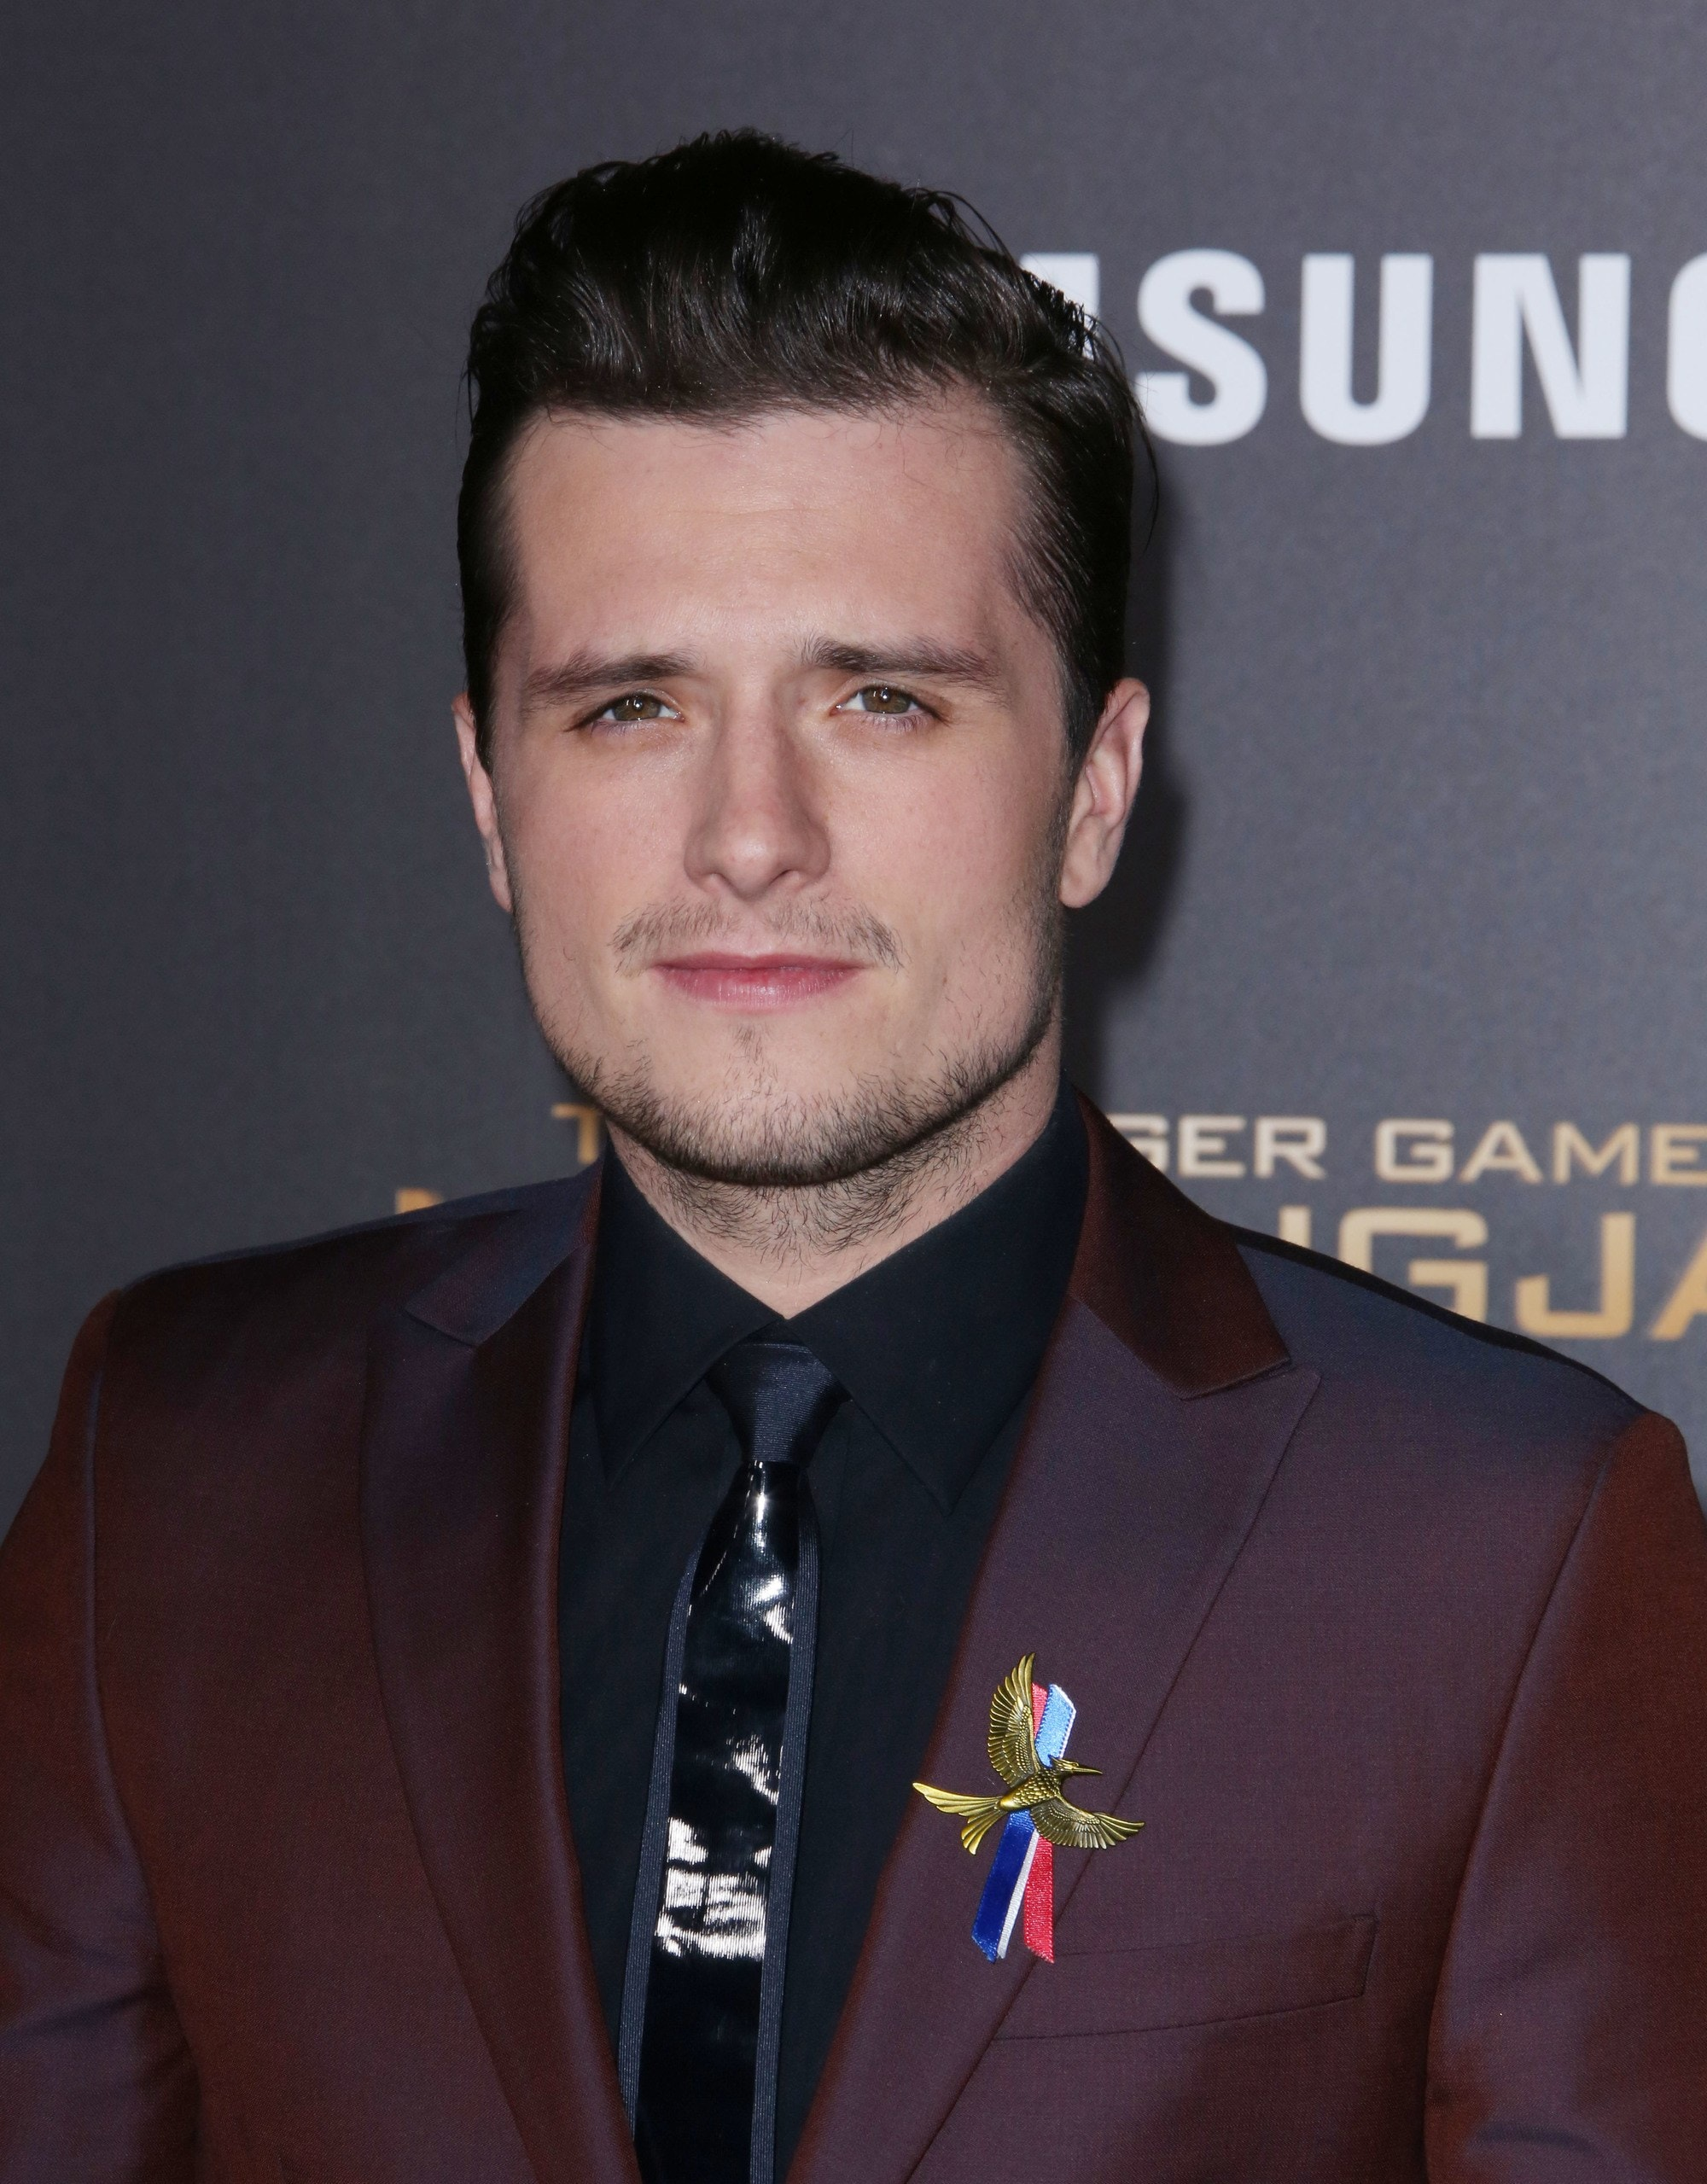 hunger games actor Josh Hutcherson with a peaked quiff style